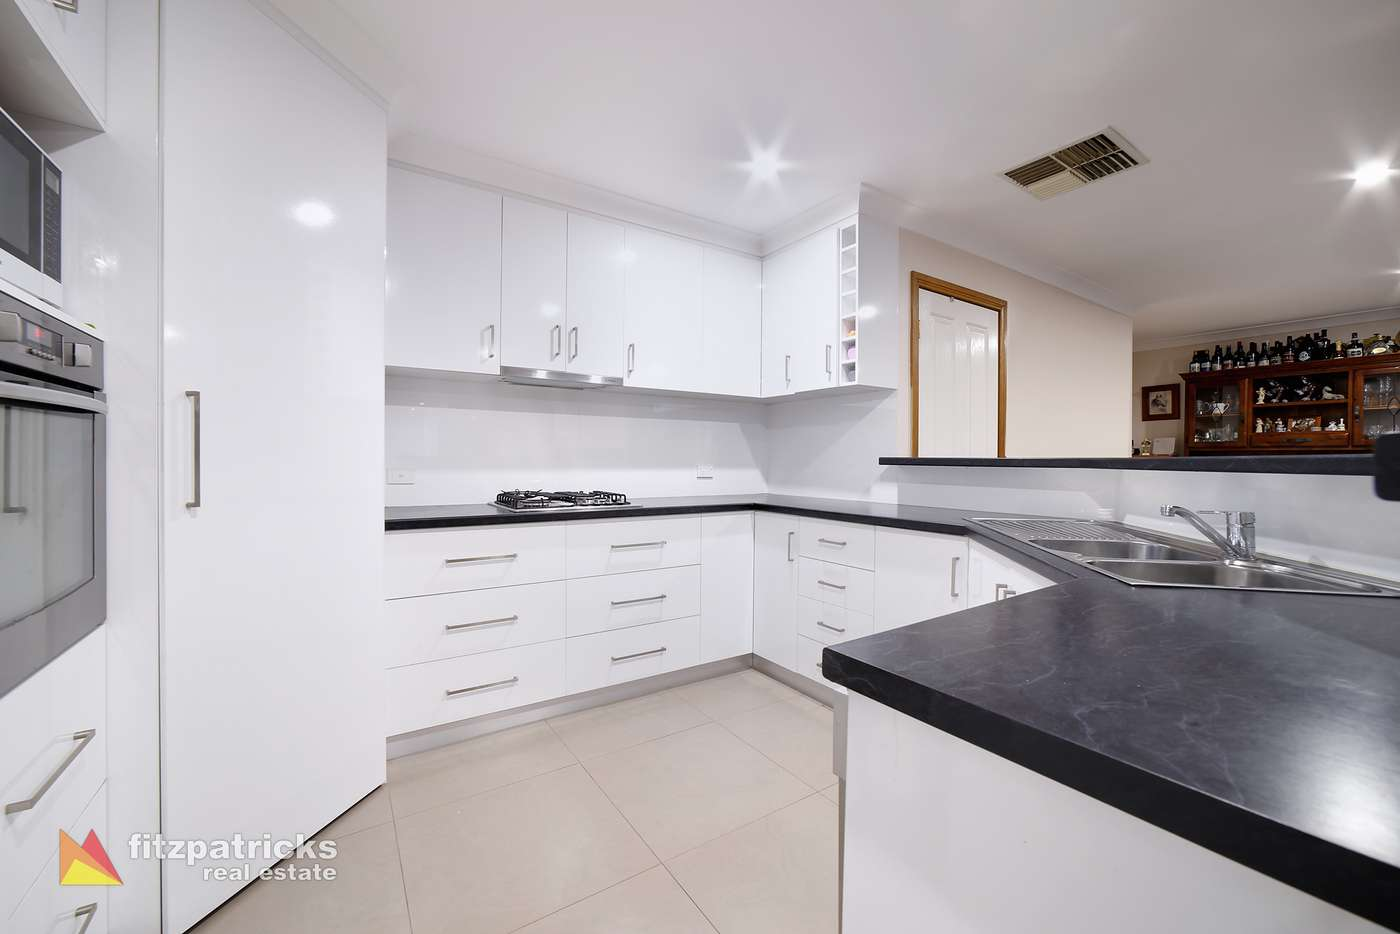 Main view of Homely house listing, 4 Hurd Street, Ashmont NSW 2650